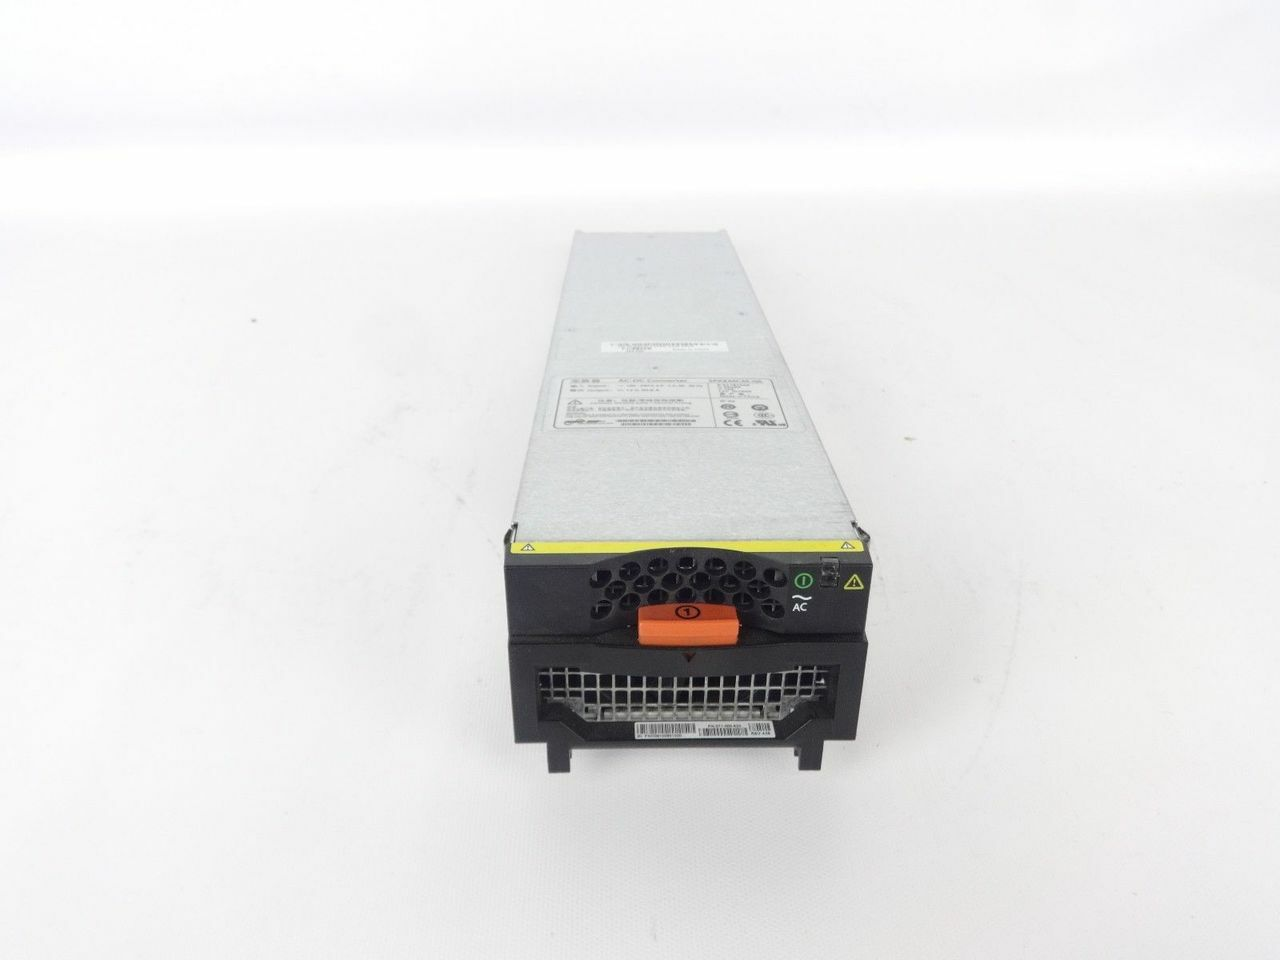 DELL C221N CX4-120 400W Power Supply SPAEMCM-06 071-000-523